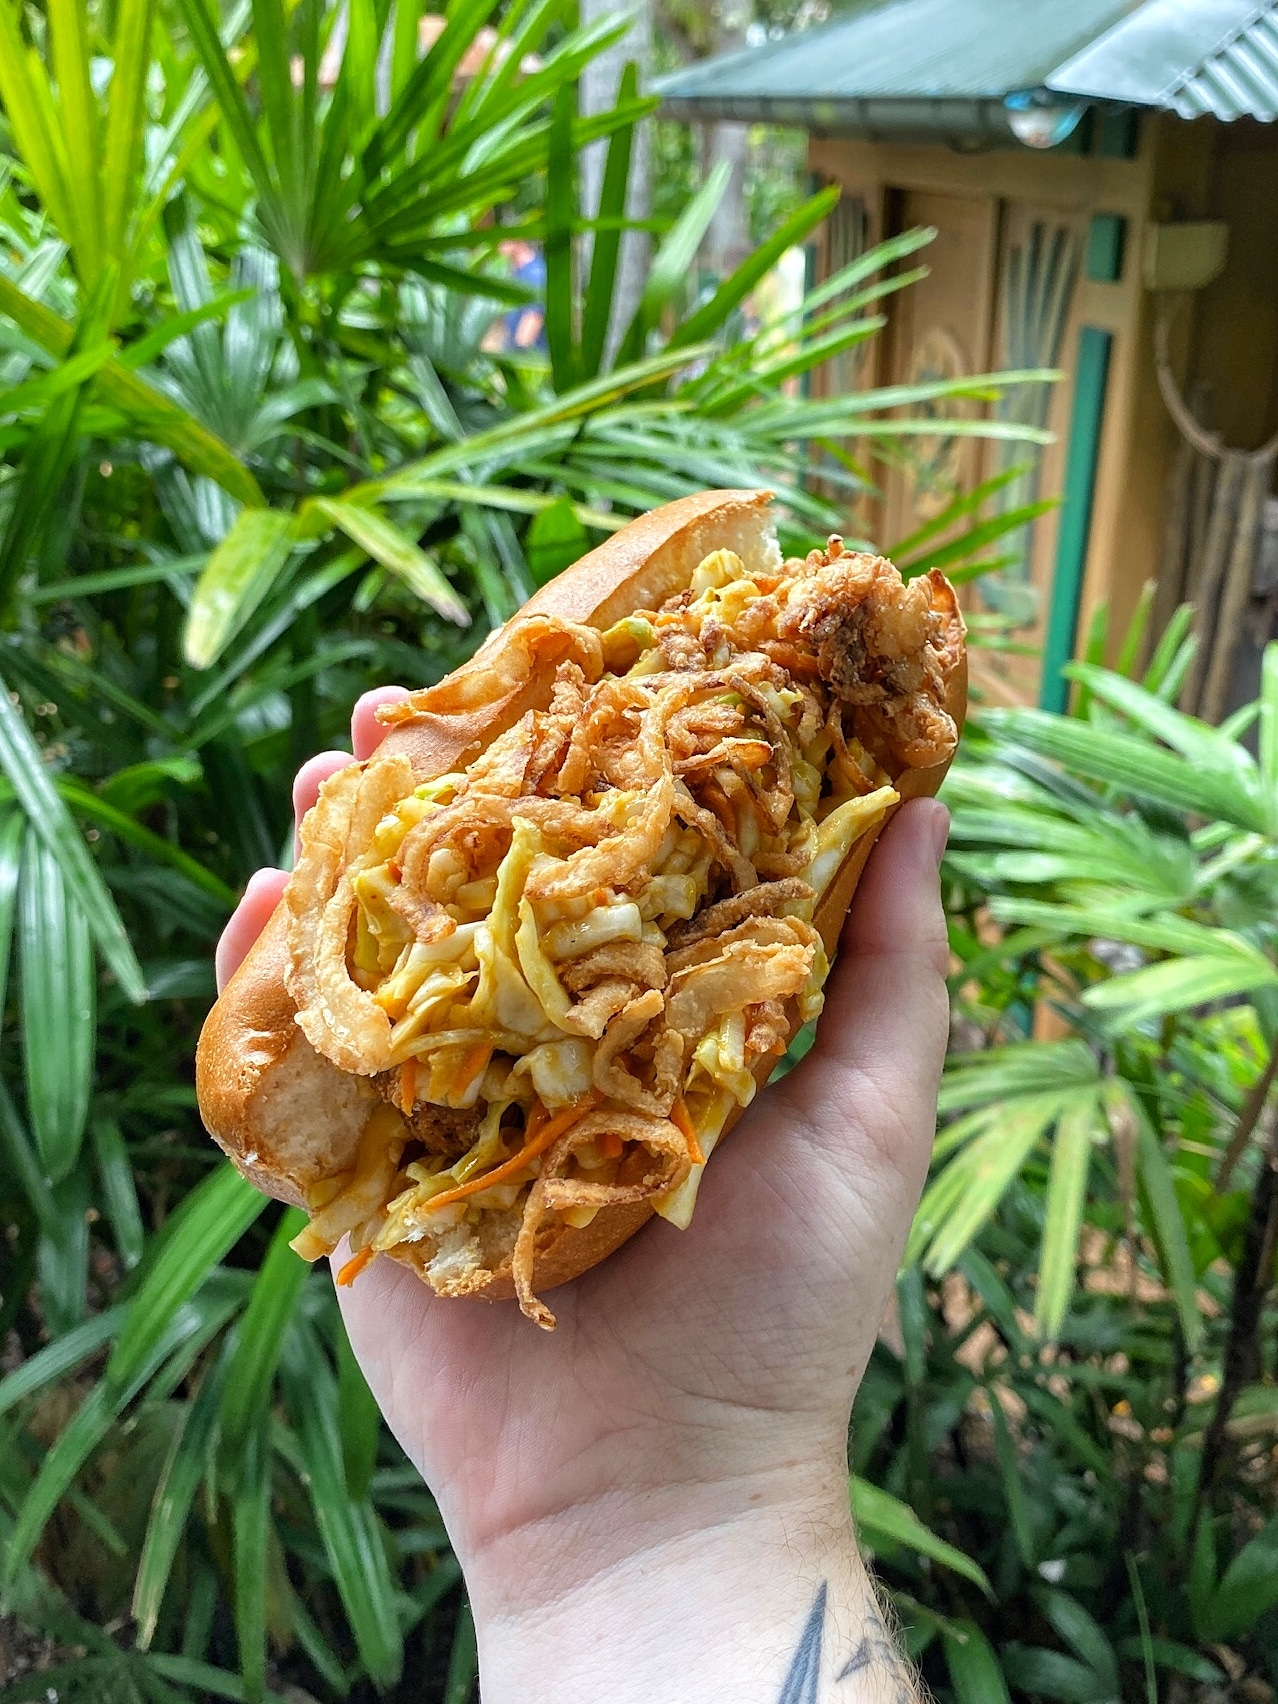 Vegan Hot Link Smokehouse Sandwich at Flame Tree Barbecue in Animal Kingdom at Walt Disney World